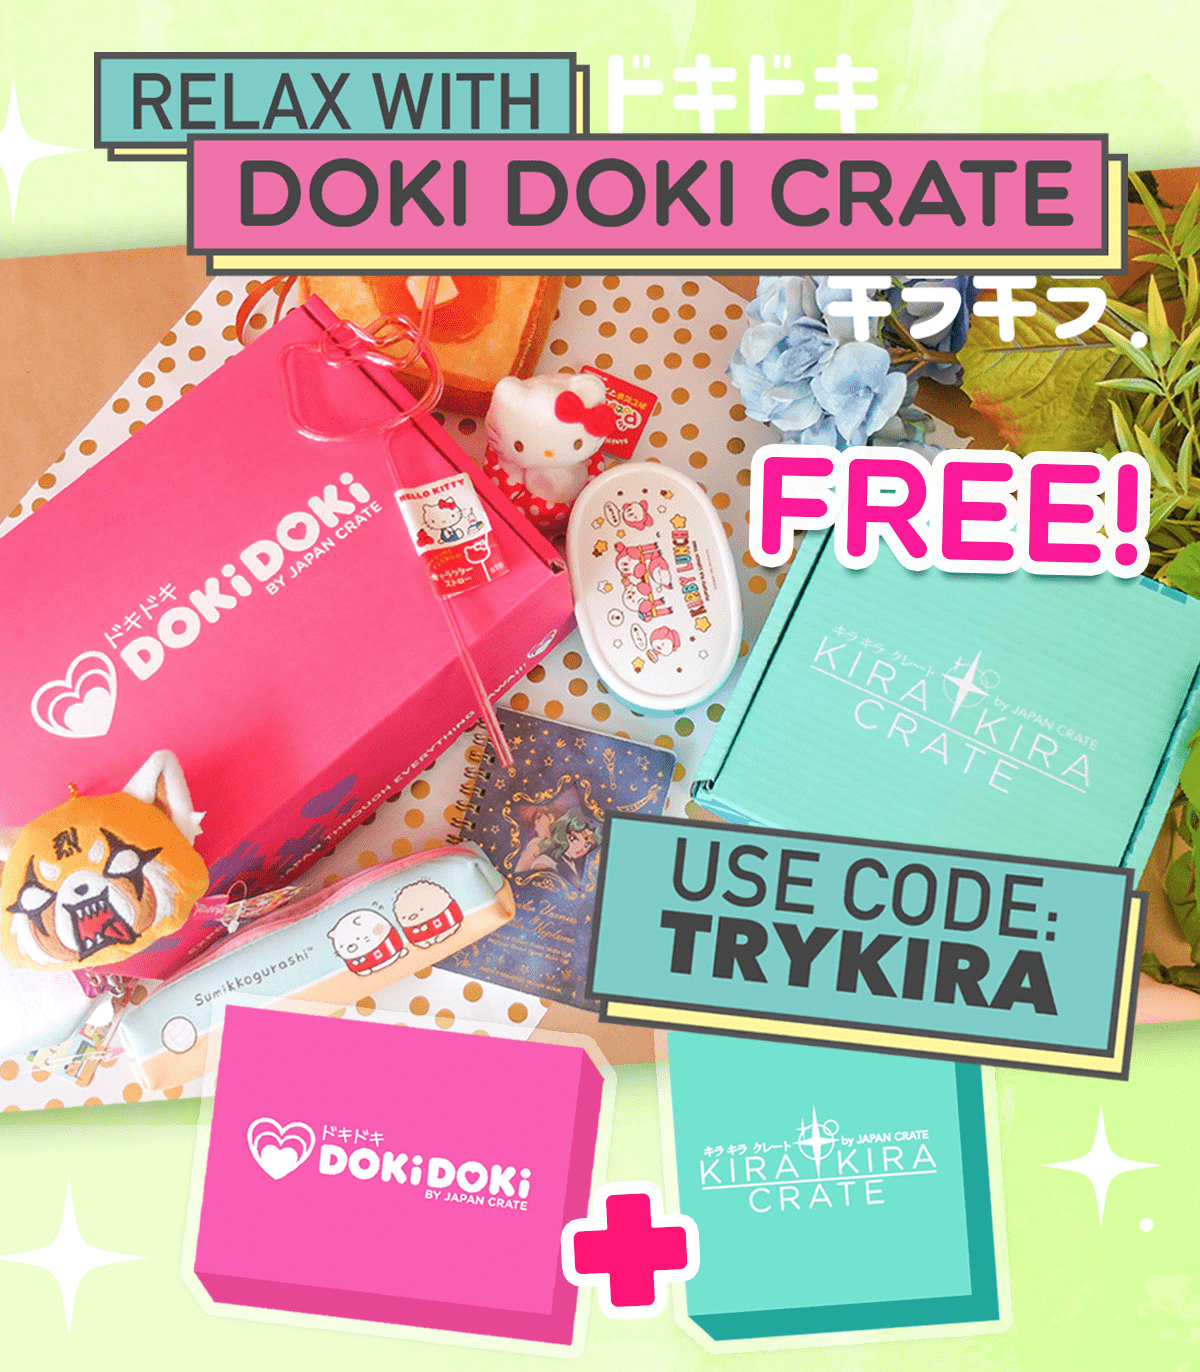 New Doki Doki Crate Coupon: Get a FREE Kira Kira Crate Sampler Box!